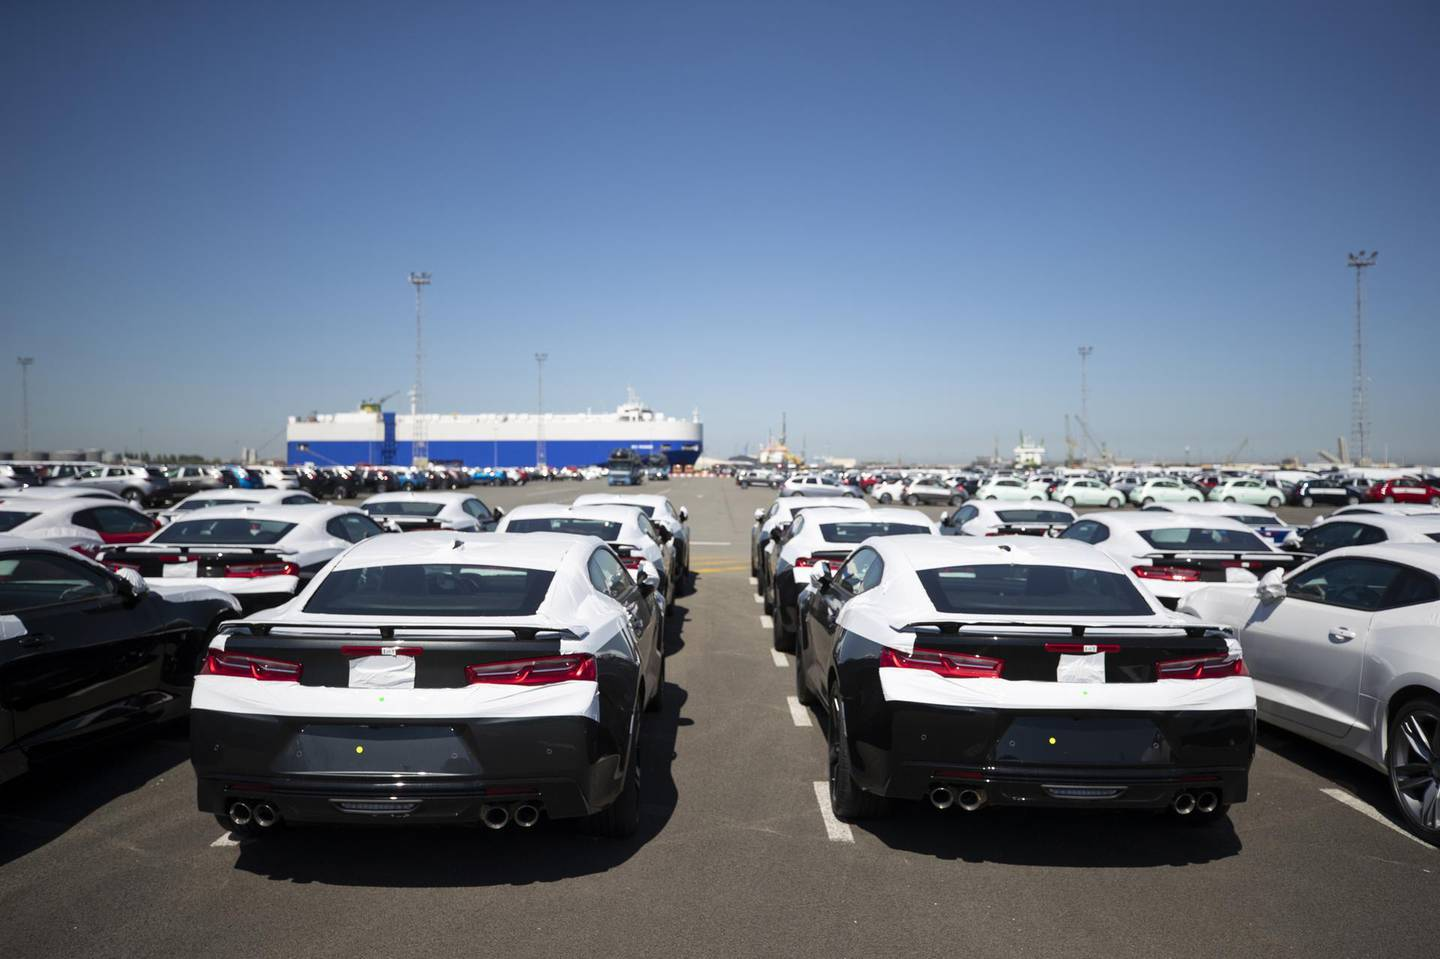 New Chevrolet Camaro automobiles, manufactured by General Motors Co., stand on the dockside before export at the Port of Zeebrugge in Zeebrugge, Belgium, on Monday, May 7, 2018. With Brexit due in 10 months, Zeebrugge embodies the repeated warnings by the U.K.'s EU partners that its departure from the bloc is a lose-lose move by adding bureaucracy for businesses and costs for consumers. Photographer: Jasper Juinen/Bloomberg